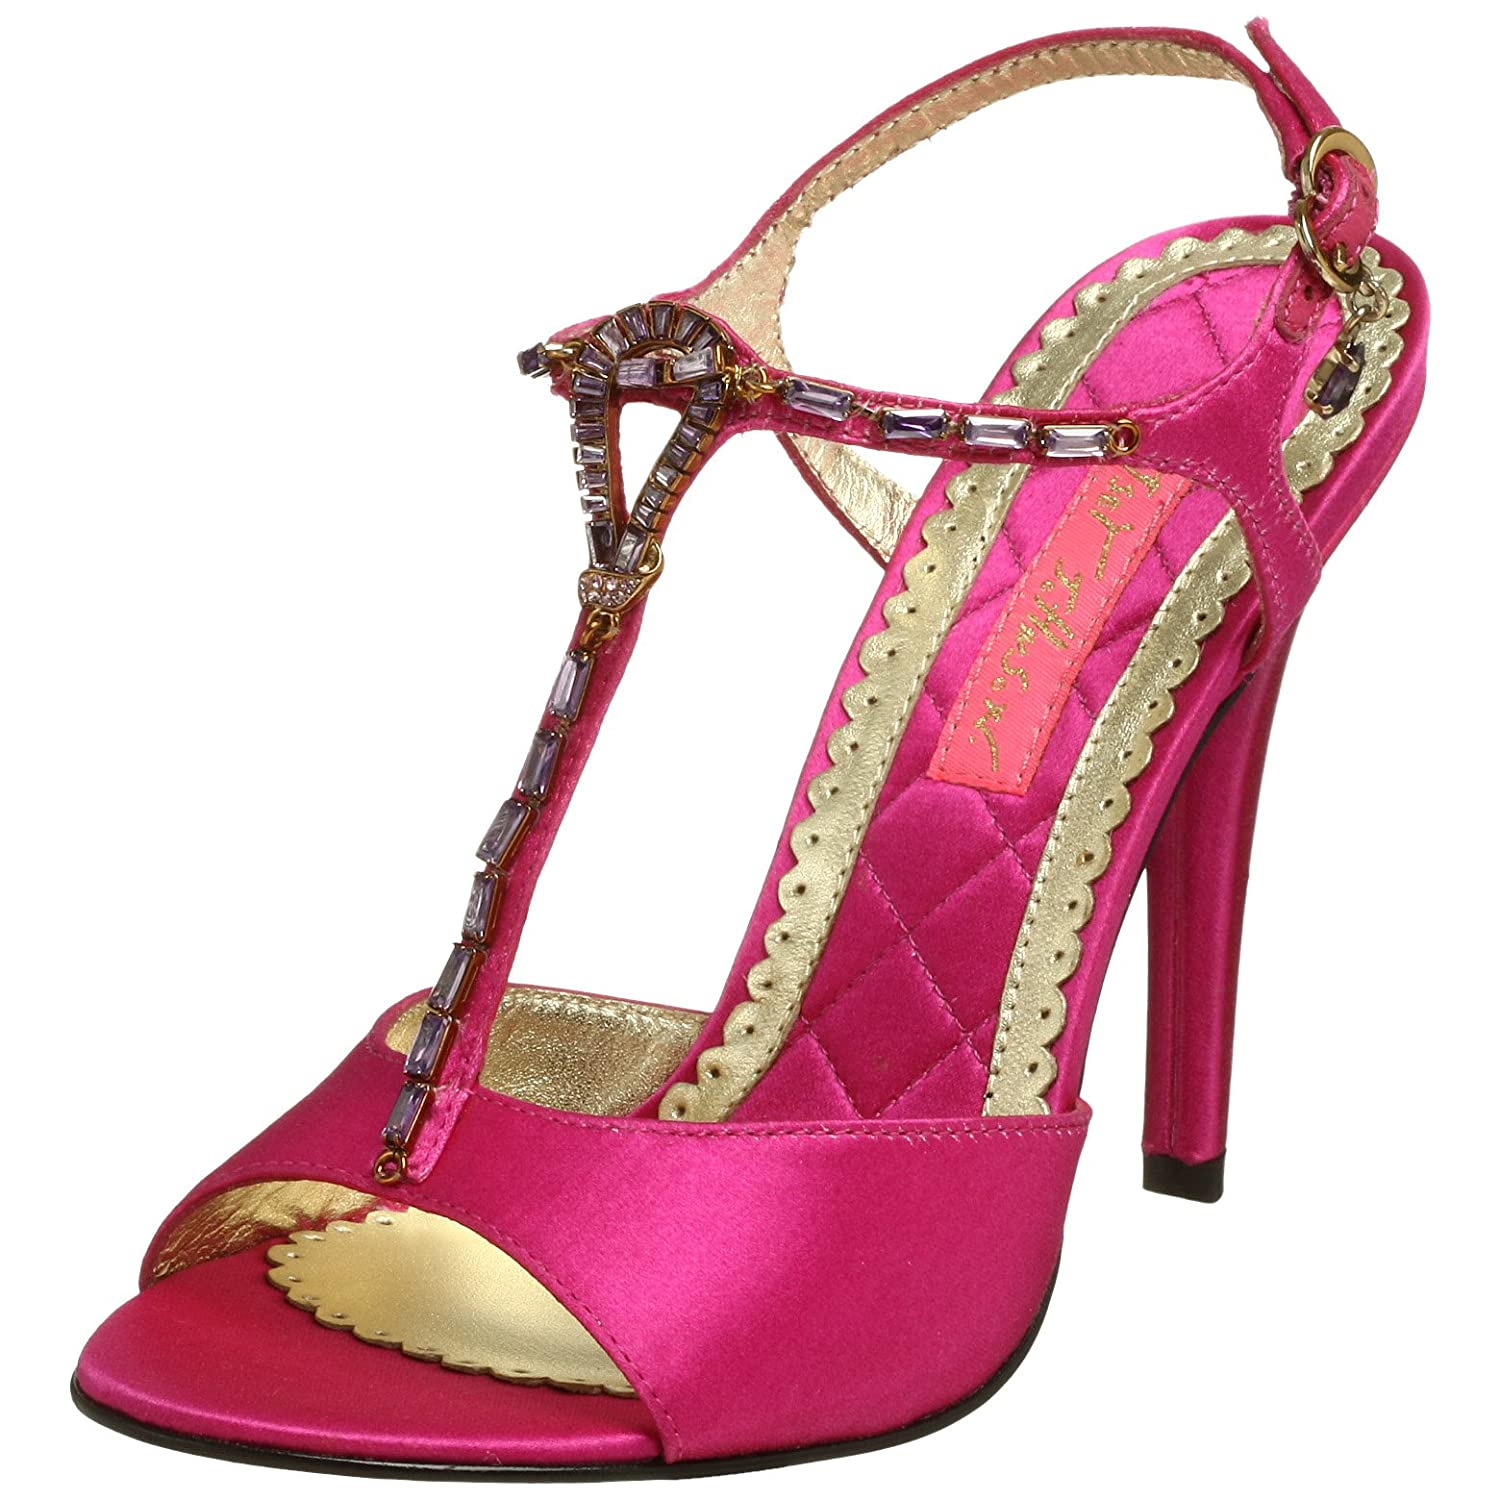 Betsey Johnson Women's Randilyn T-Strap Sandal - Free Overnight Shipping & Return Shipping: Endless.com